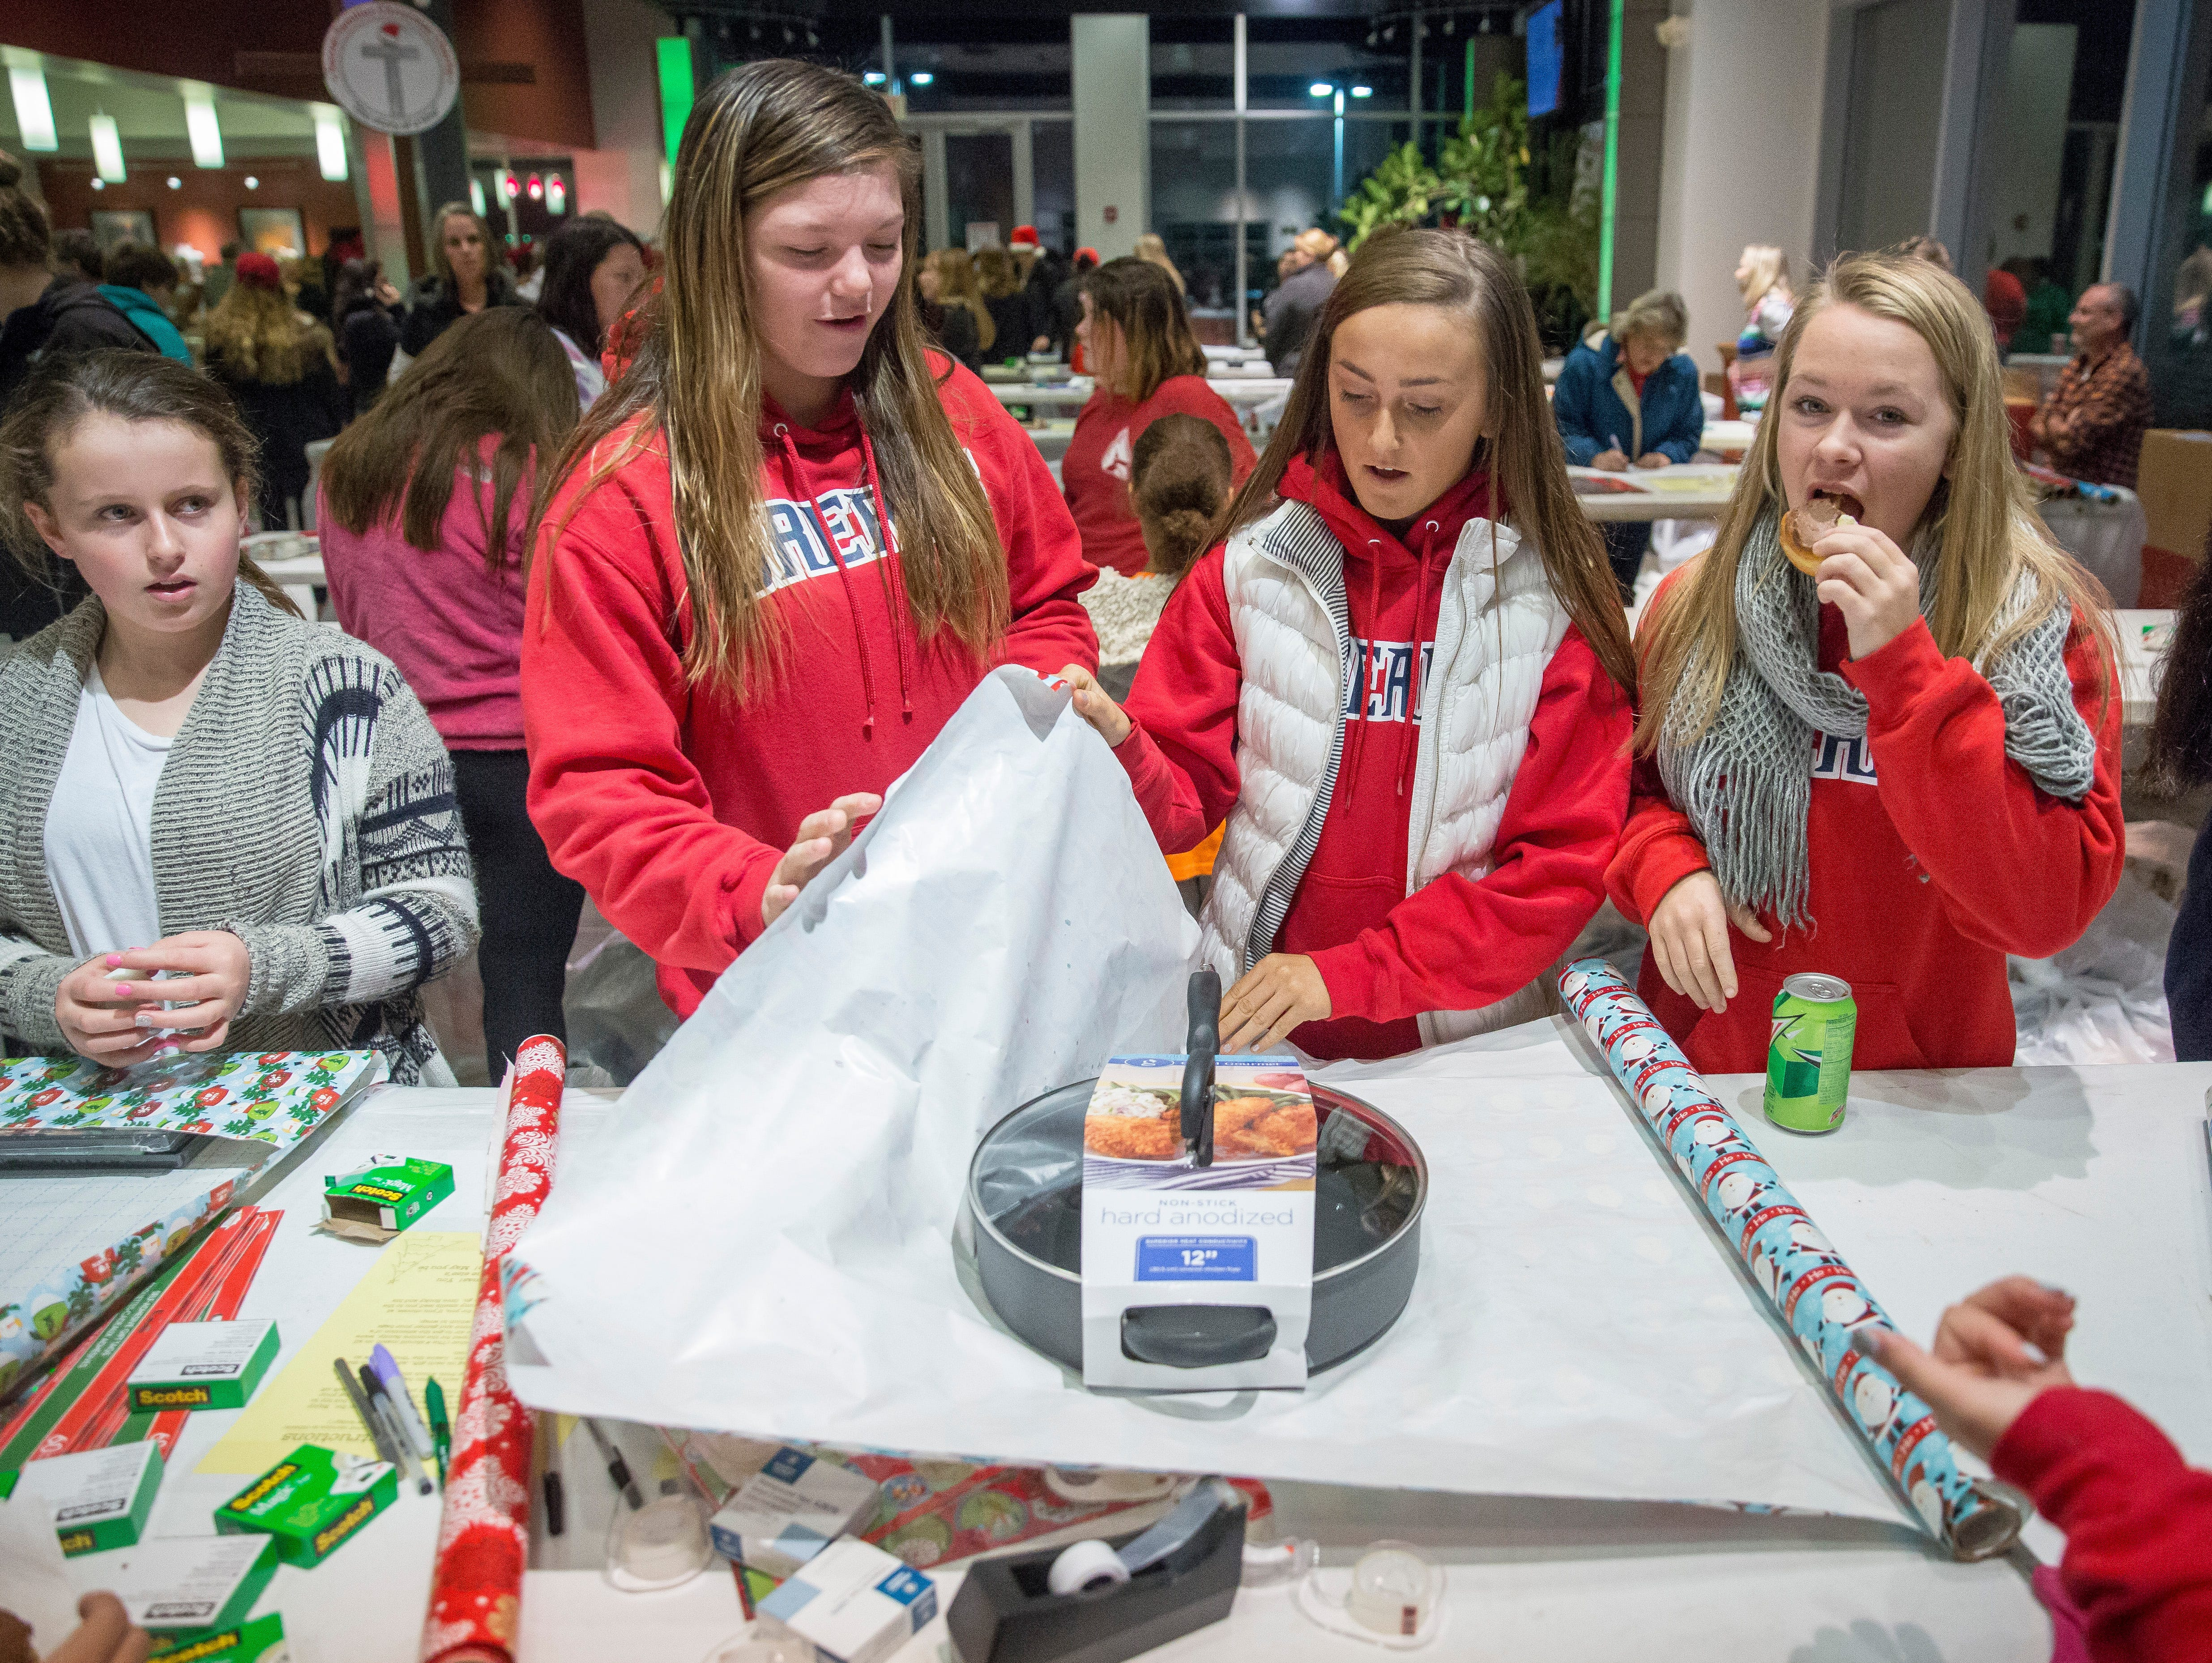 Hundreds of Volunteers gather at Toyota of Muncie to wrap and deliver presents Saturday during the Secret Families Christmas Charity event. Three groups worked to buy the gifts, wrap them and deliver them.